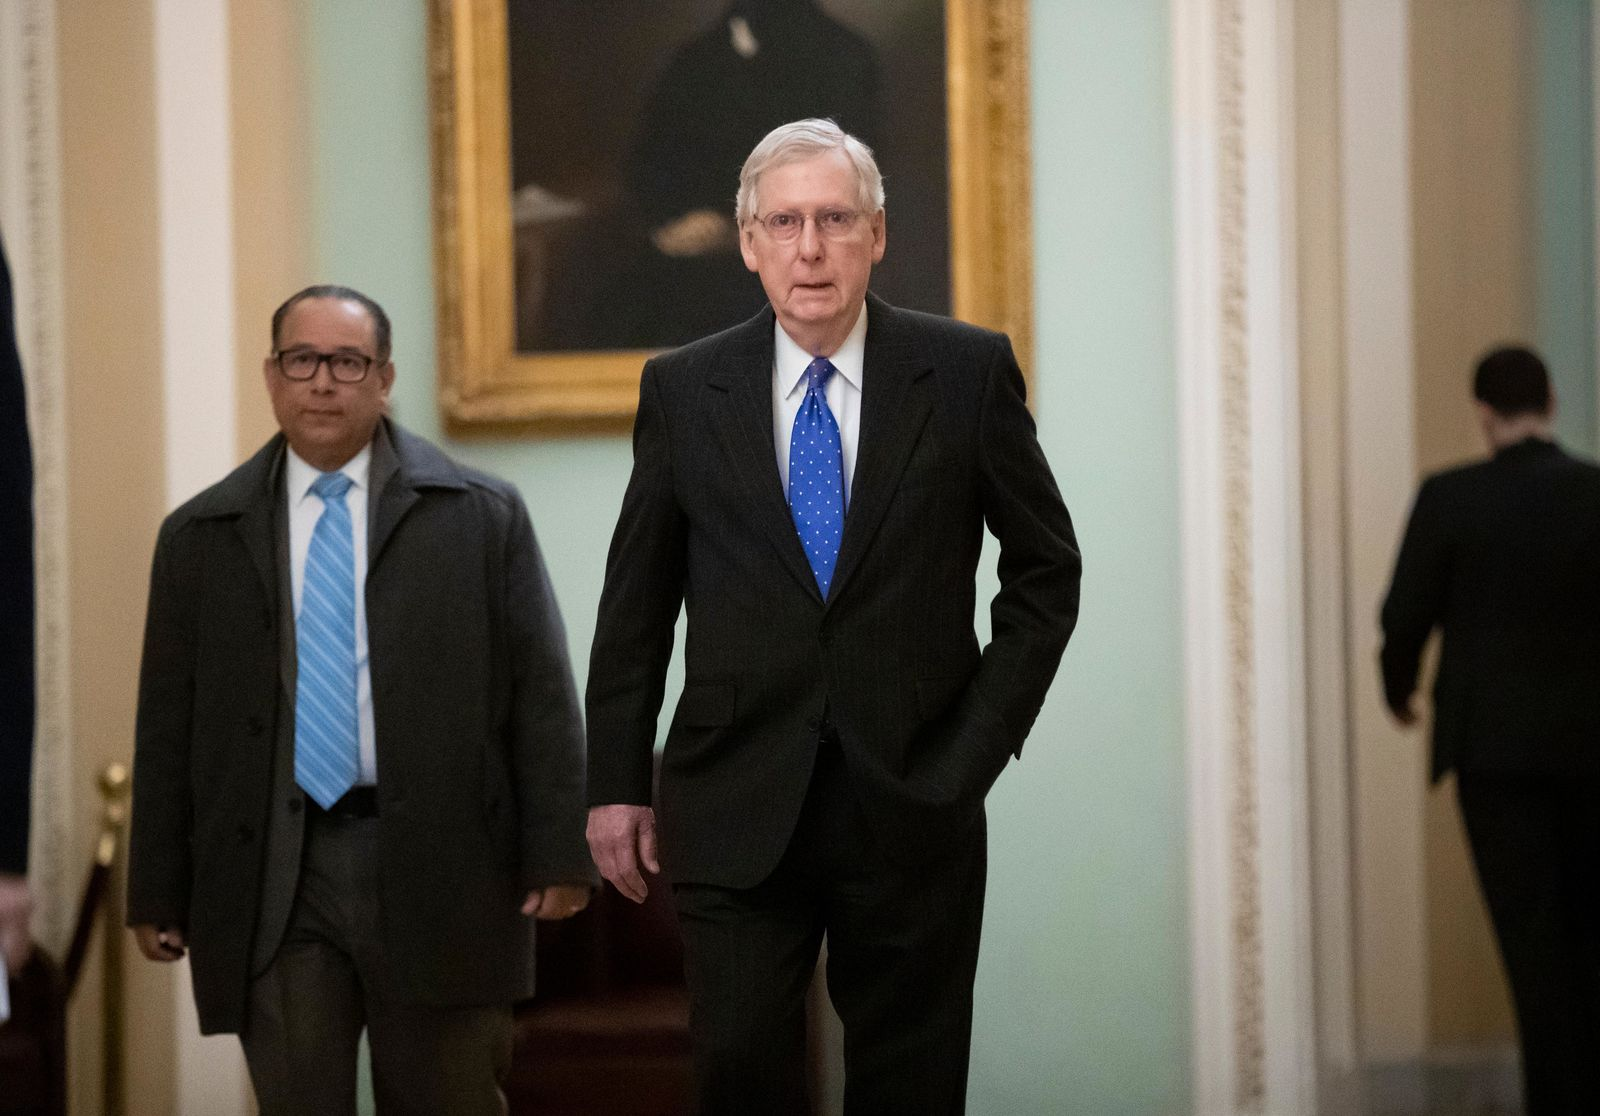 Senate Majority Leader Mitch McConnell, R-Ky., arrives at the Capitol in Washington, Wednesday, Nov. 14, 2018, as Senate Republicans are facing renewed pressure to pass legislation to protect special counsel Robert Mueller. (AP Photo/J. Scott Applewhite)